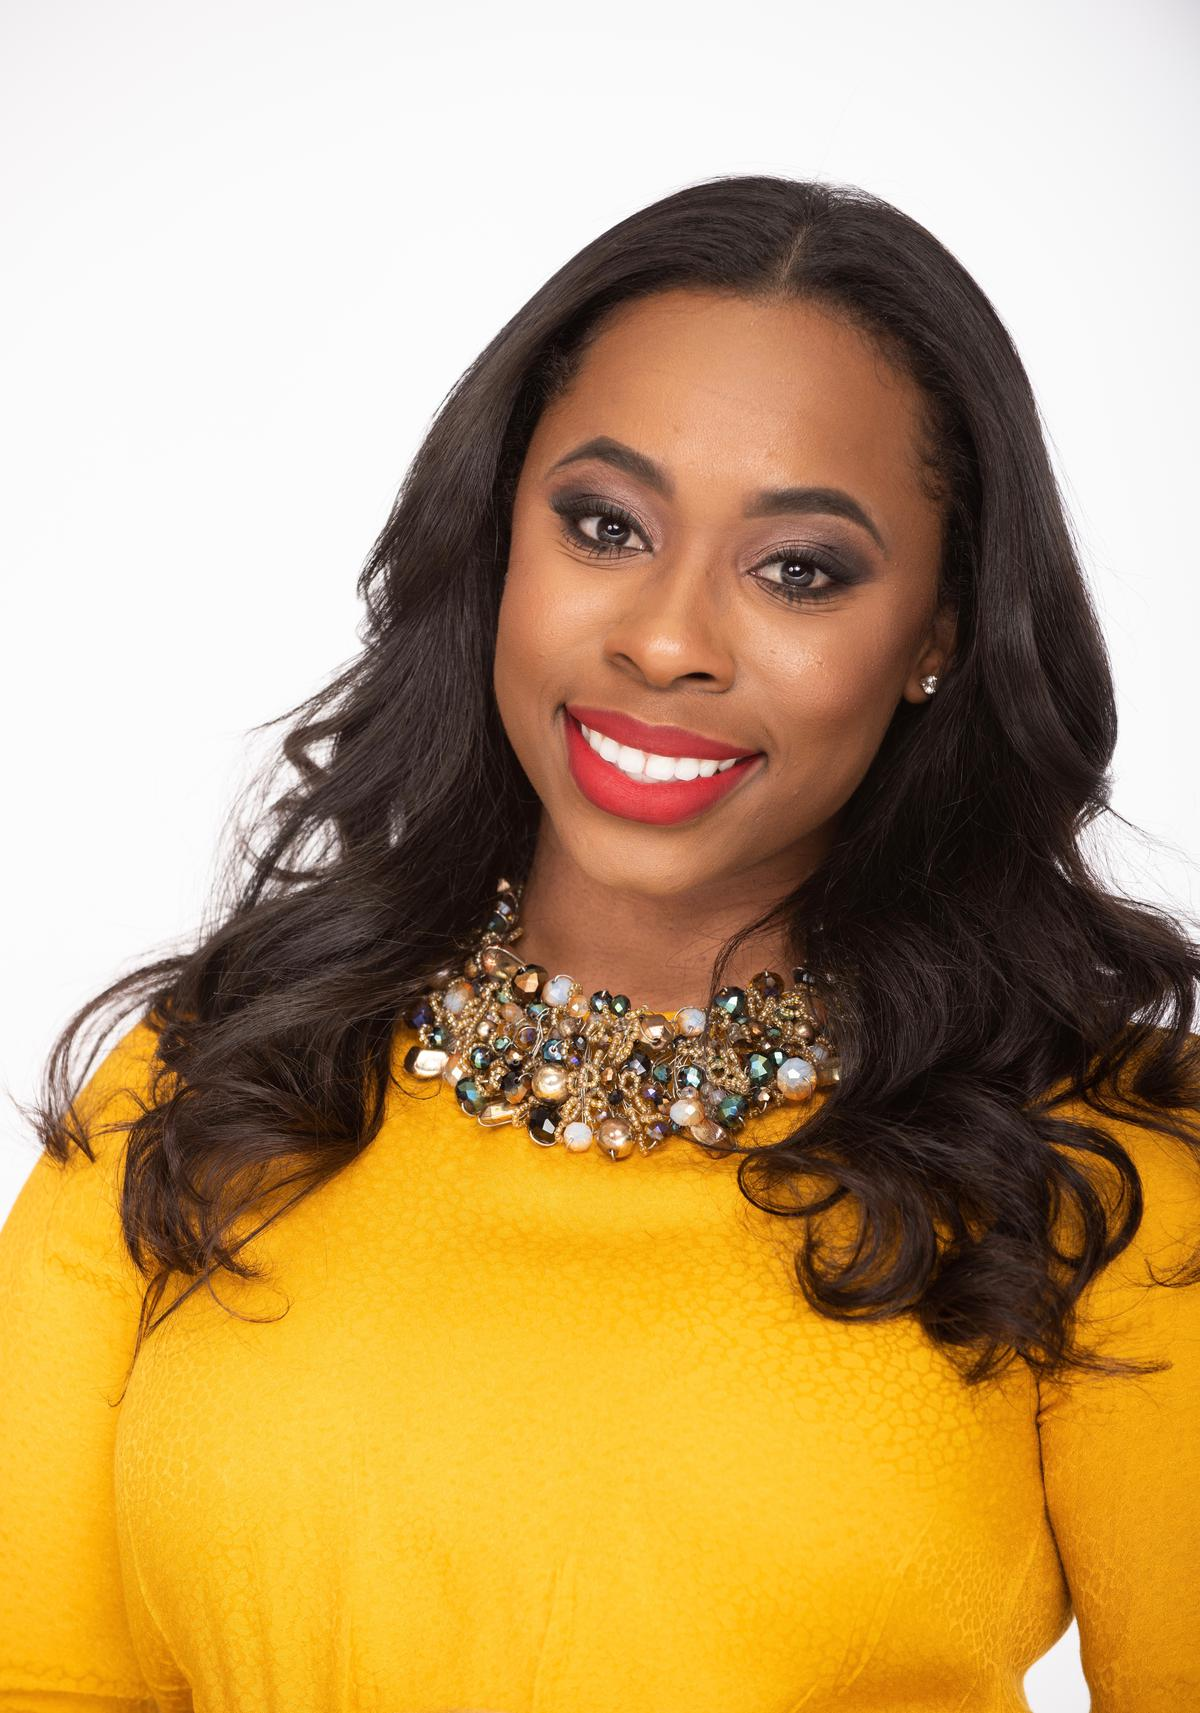 March 17th guest speaker, Pastor Shalondria Taylor